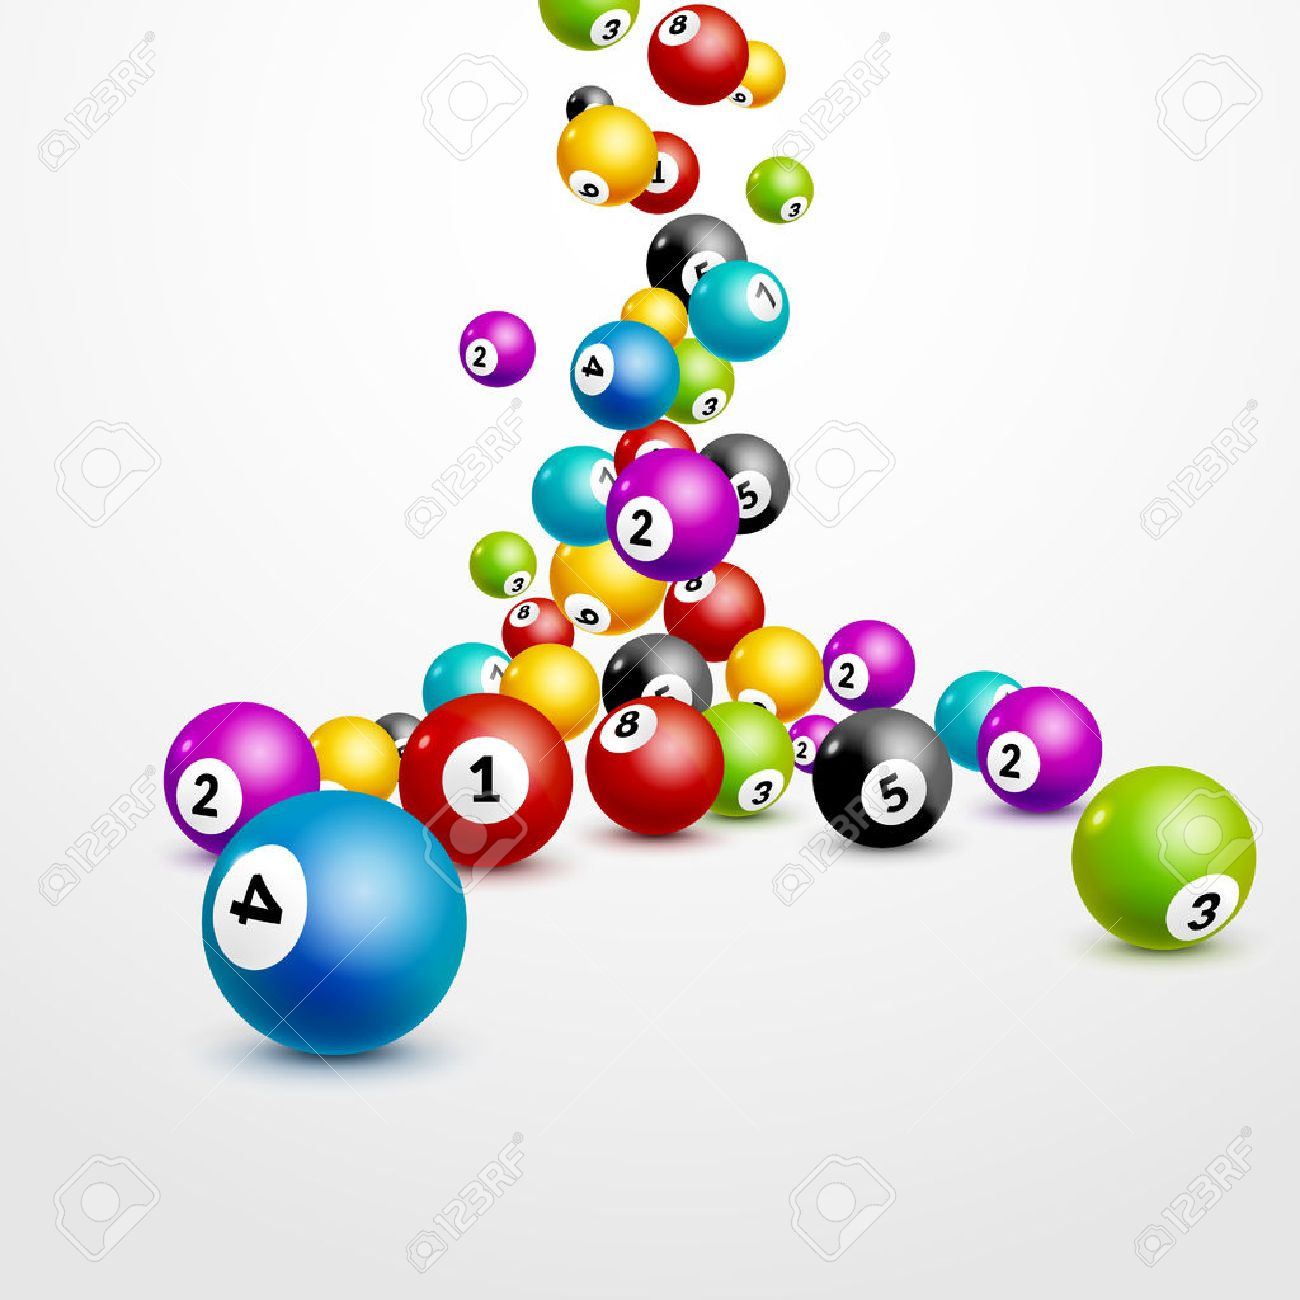 Bingo lottery balls numbers background. Lottery game balls. Lotto winner. Falling balls template. Banque d'images - 68591329